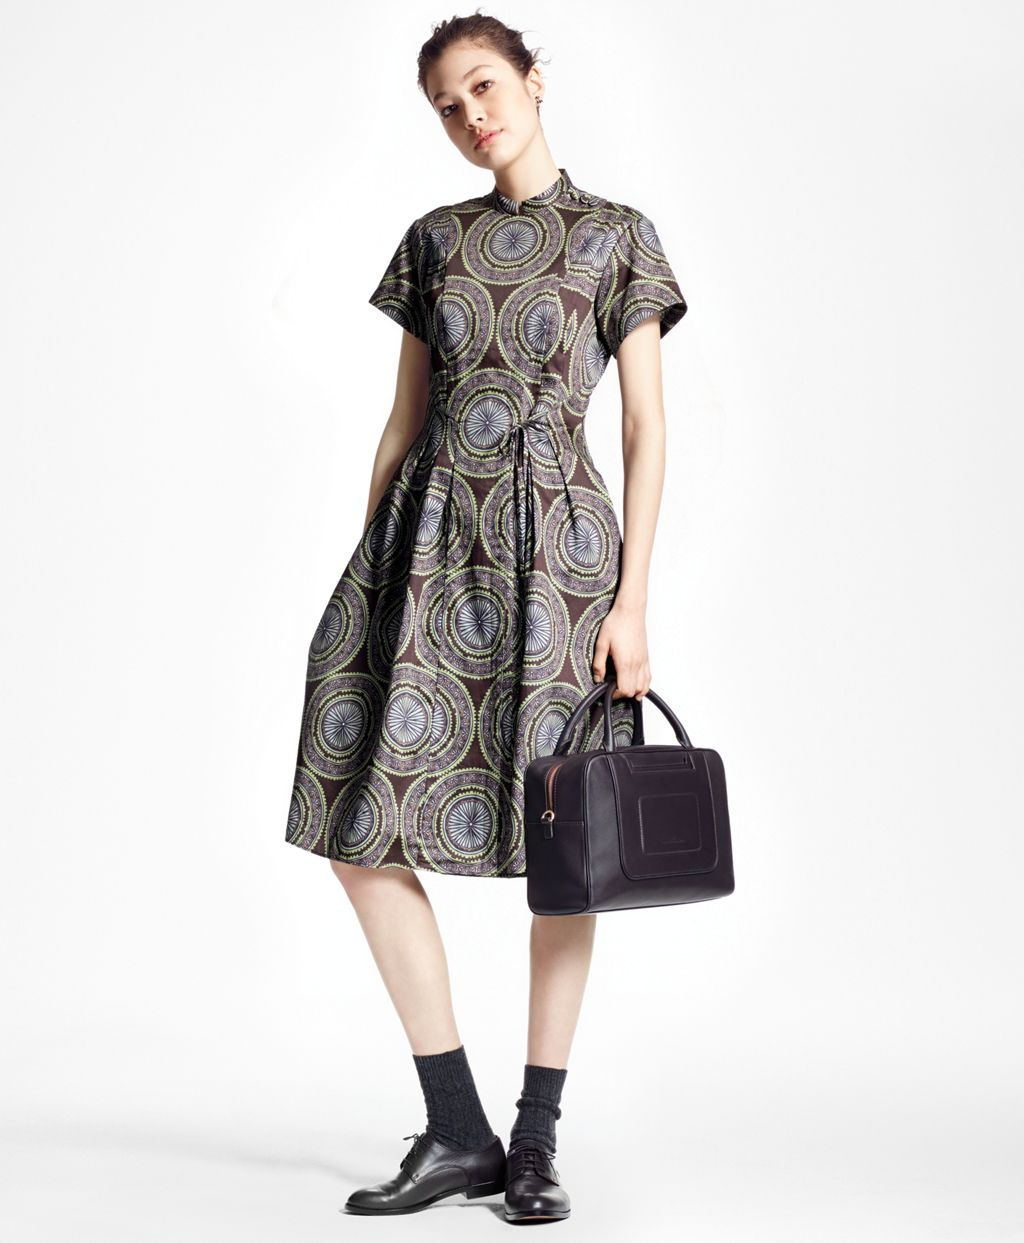 Medallion shirt dress bb au ecommerce fashion wish list